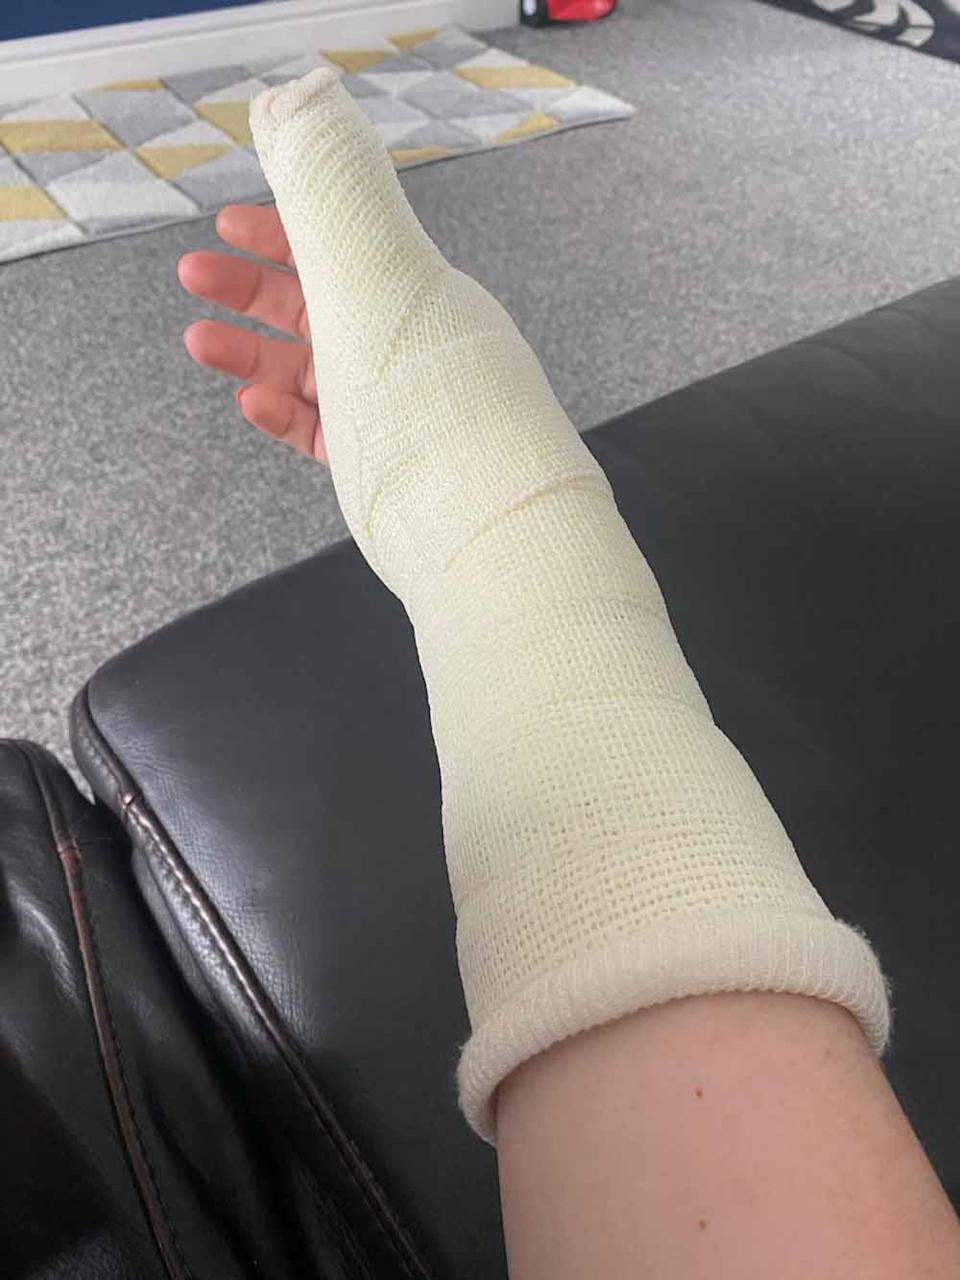 Paige's arm in a hospital bandage. PA REAL LIFE COLLECT